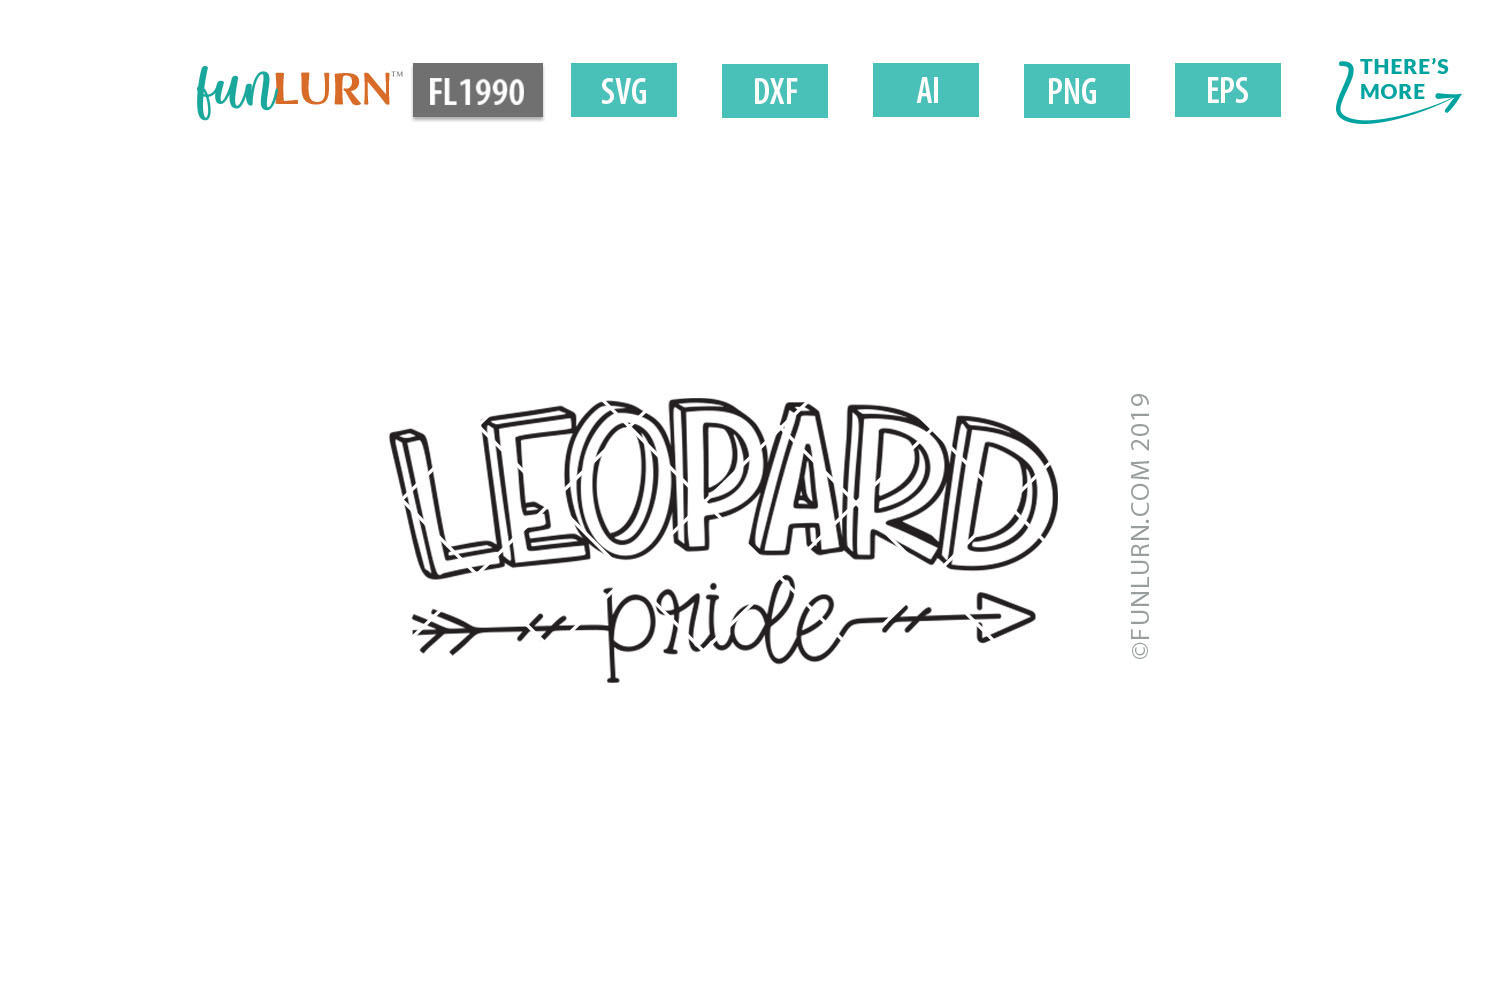 Leopard Pride Team SVG Cut File example image 2